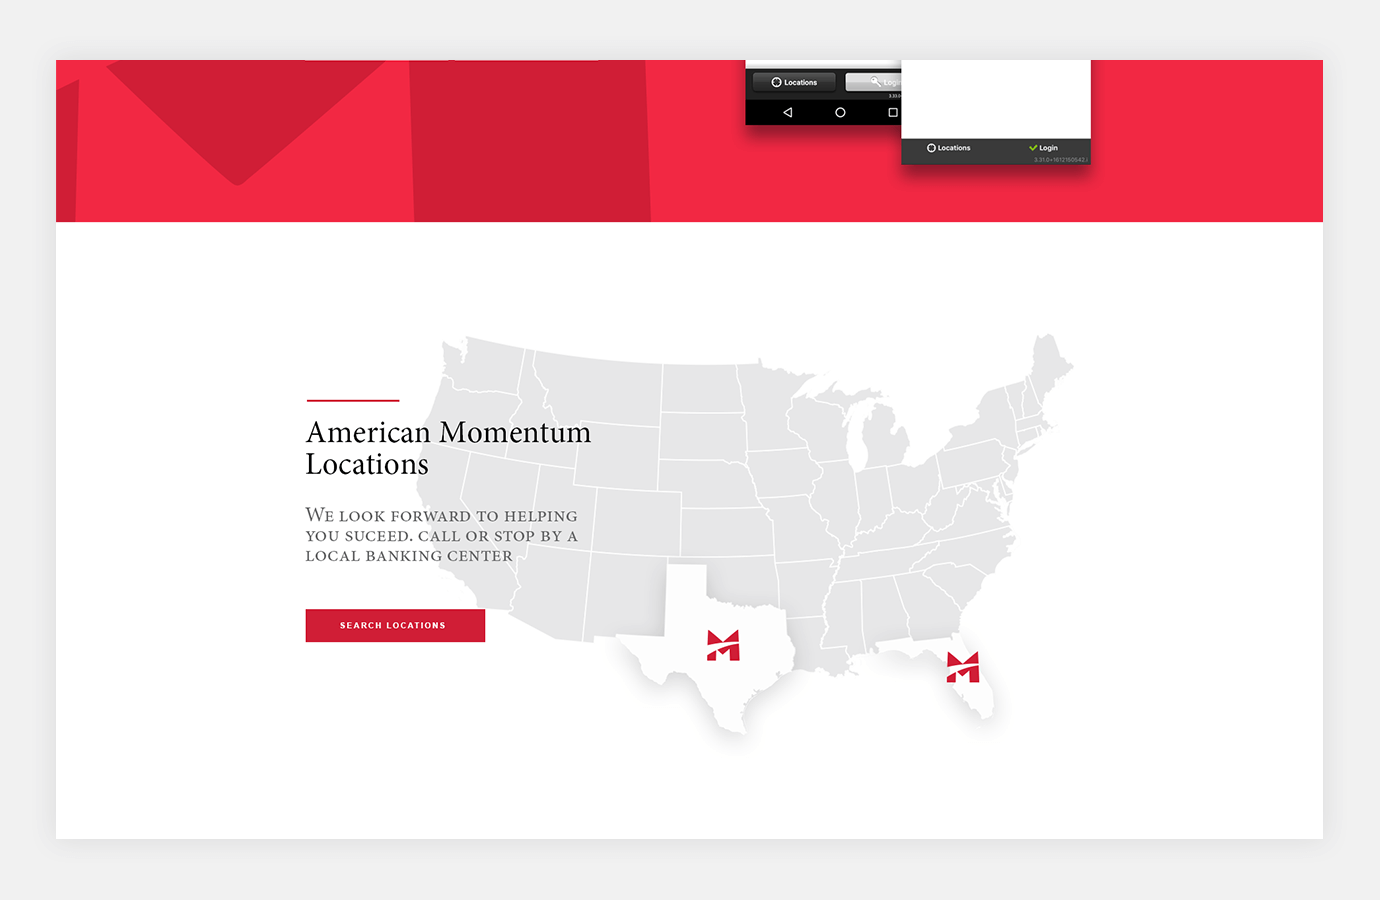 Screenshot of American Momentum Bank website showing bank locations on the U.S. map